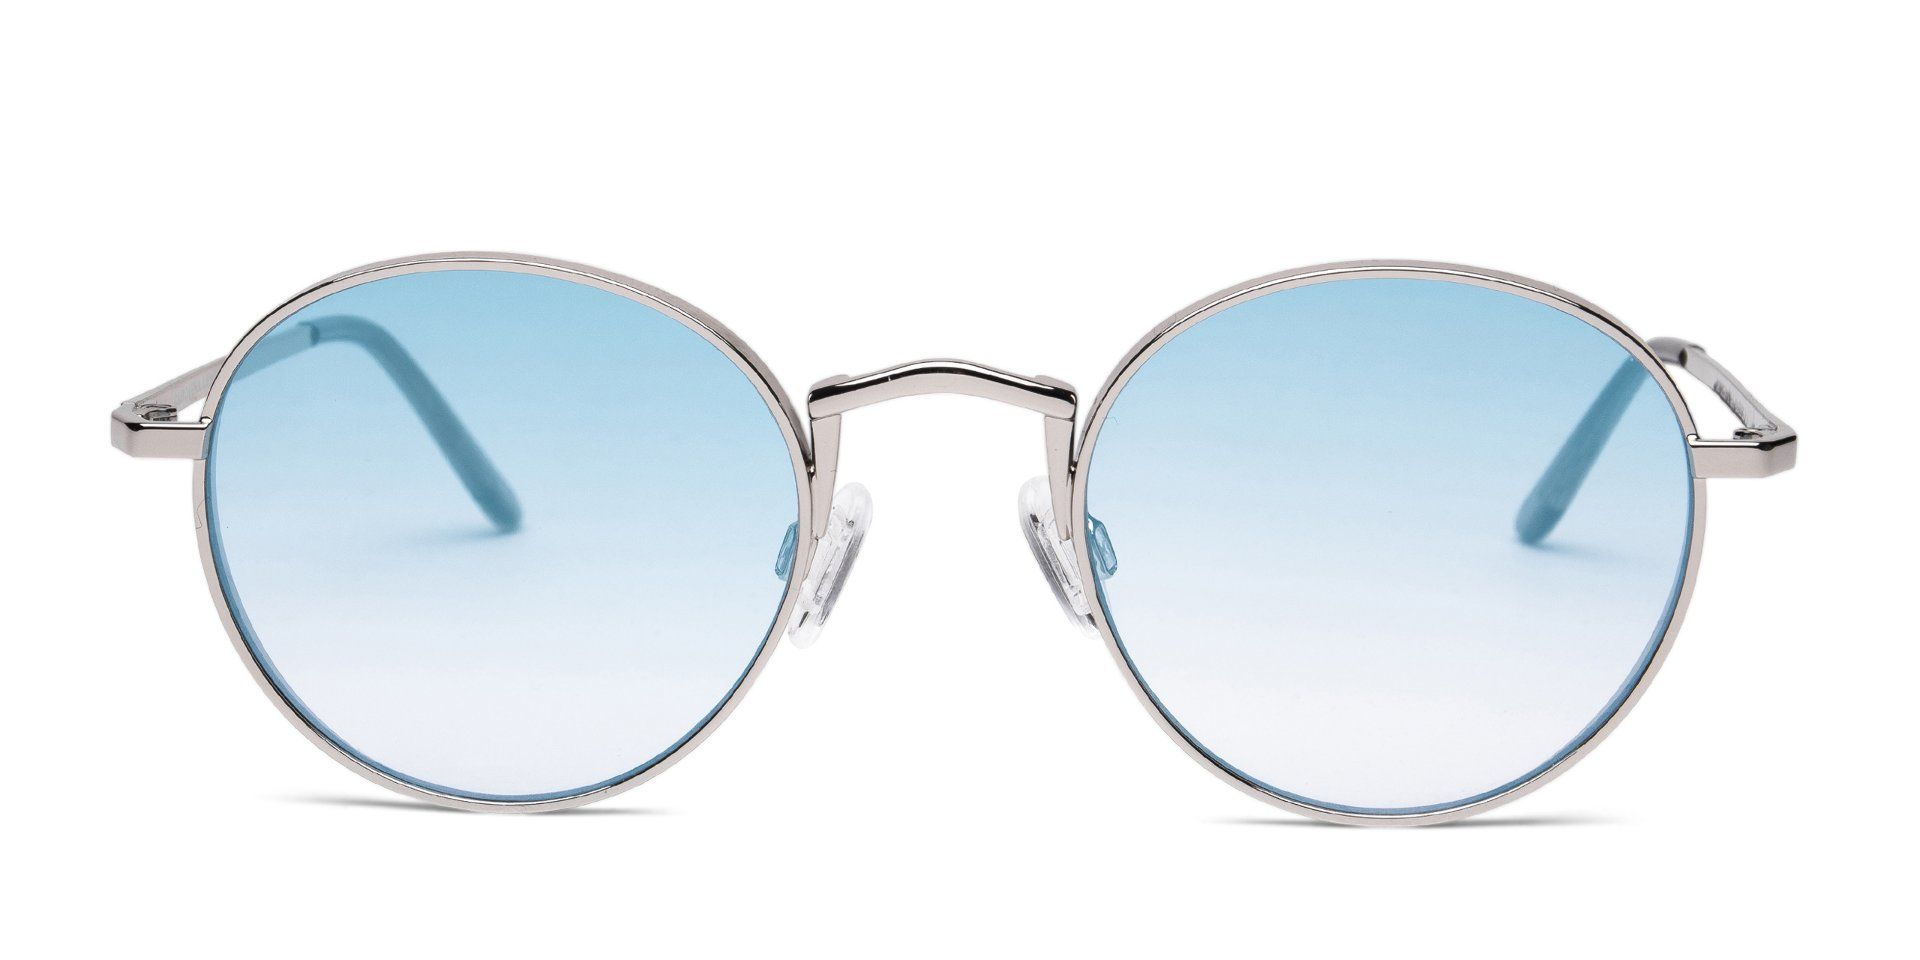 FRAME Silver LENS Gradient Turquoise